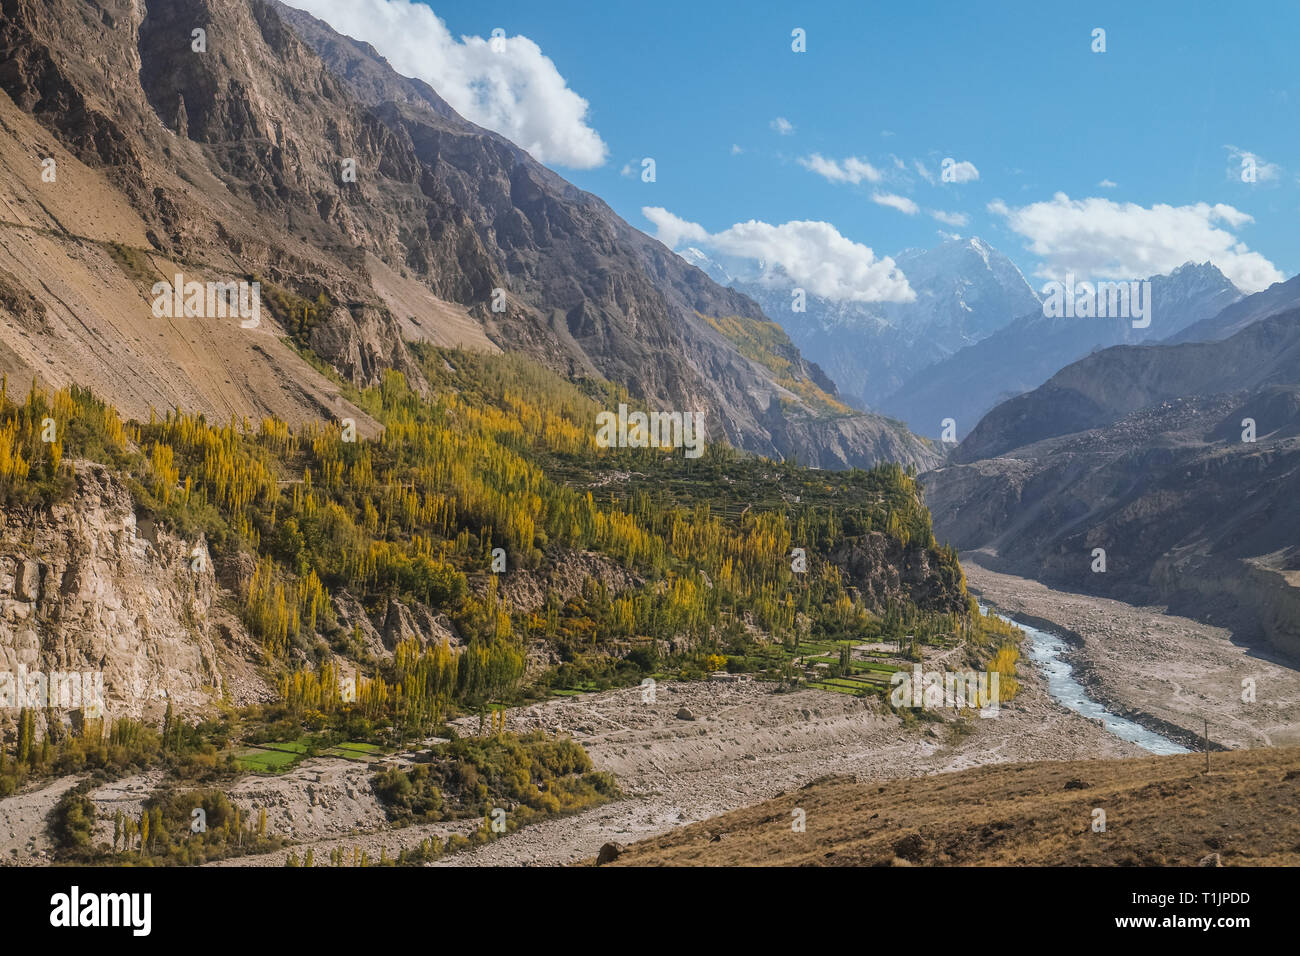 Landscape view of mountains and Hunza river in autumn. View from Karakoram highway, Gilgit Baltistan. Hunza valley, Pakistan. - Stock Image